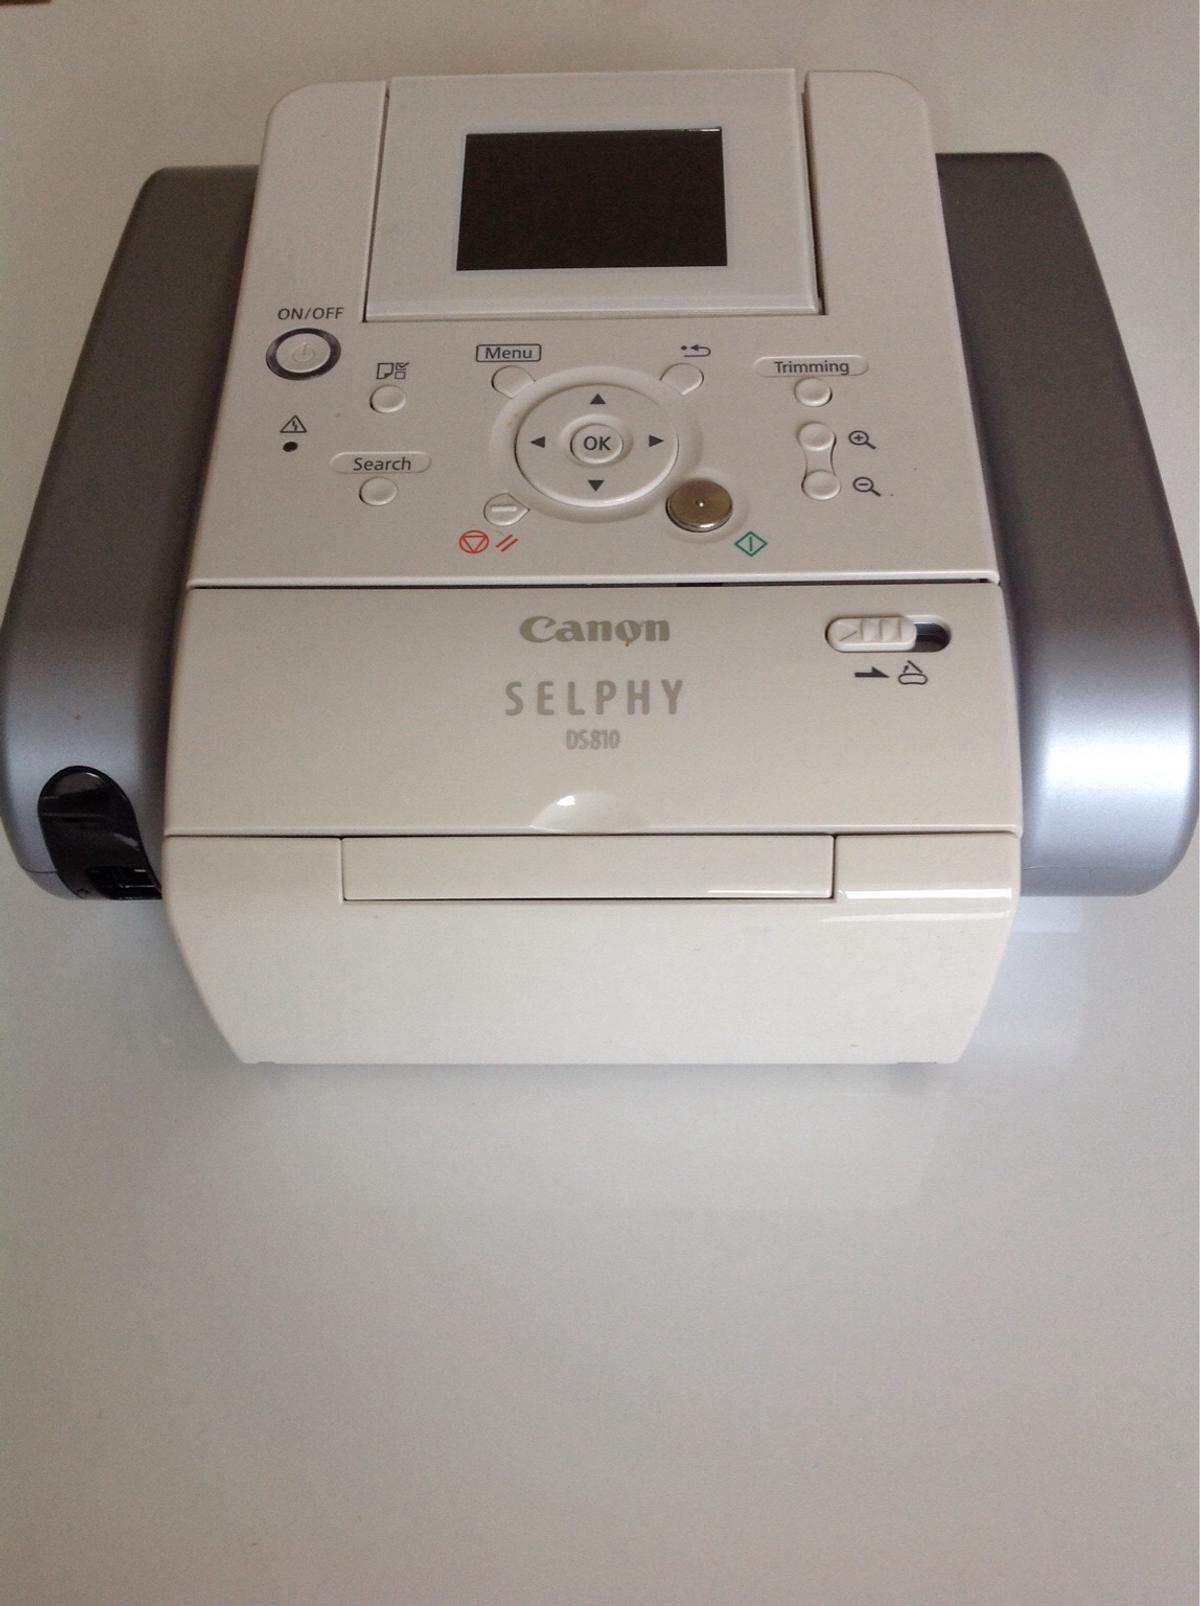 CANON SELPHY DS810 PRINTER WINDOWS 8 DRIVERS DOWNLOAD